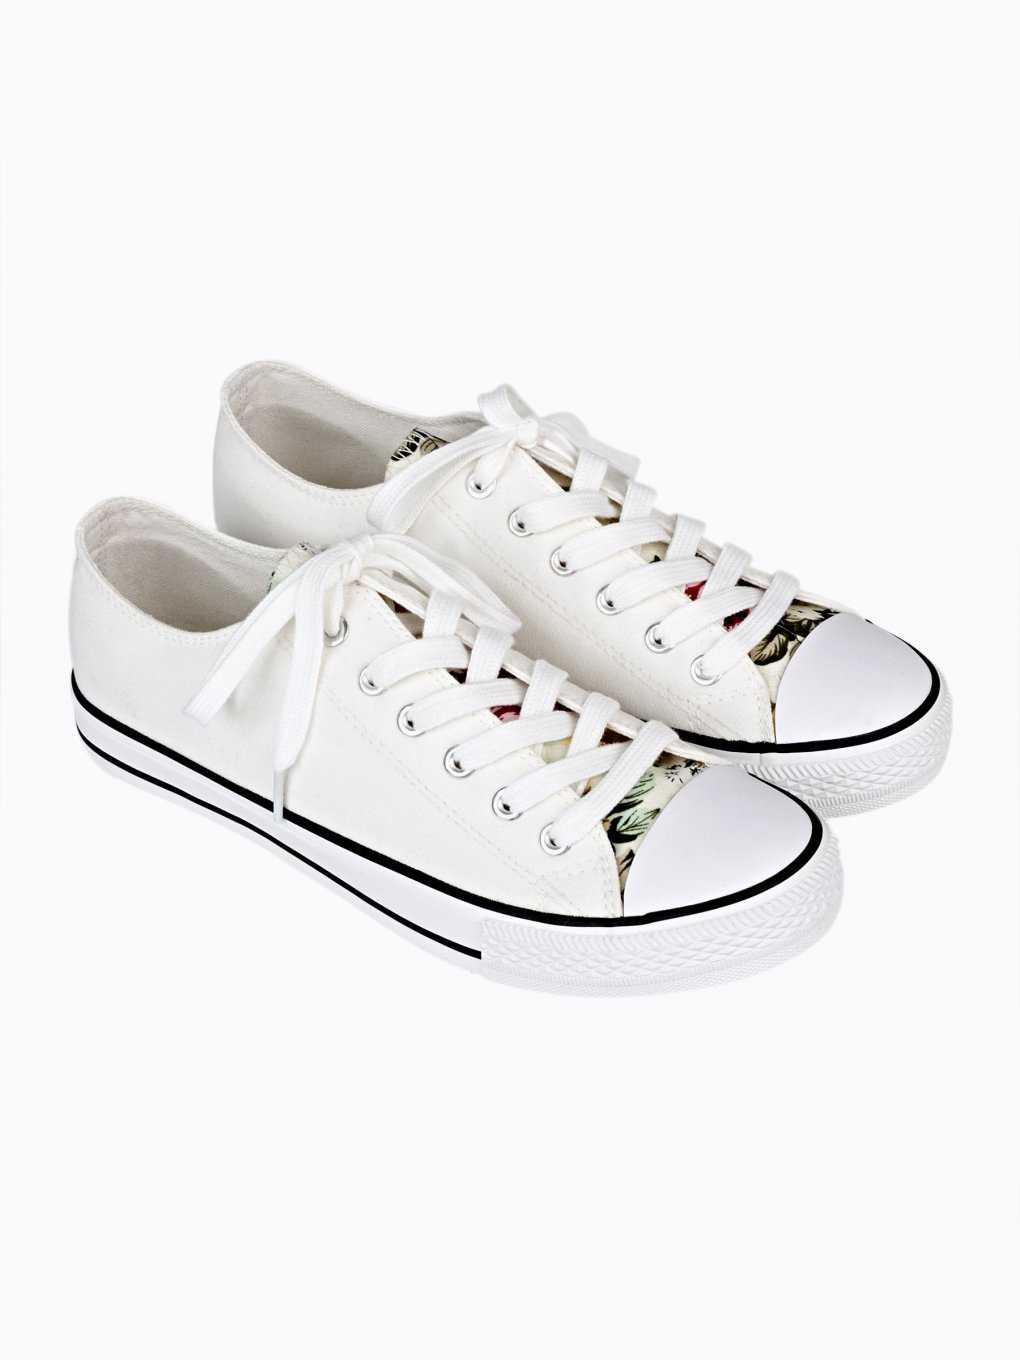 LACE-UP SNEAKERS WITH FLORAL TONGUE